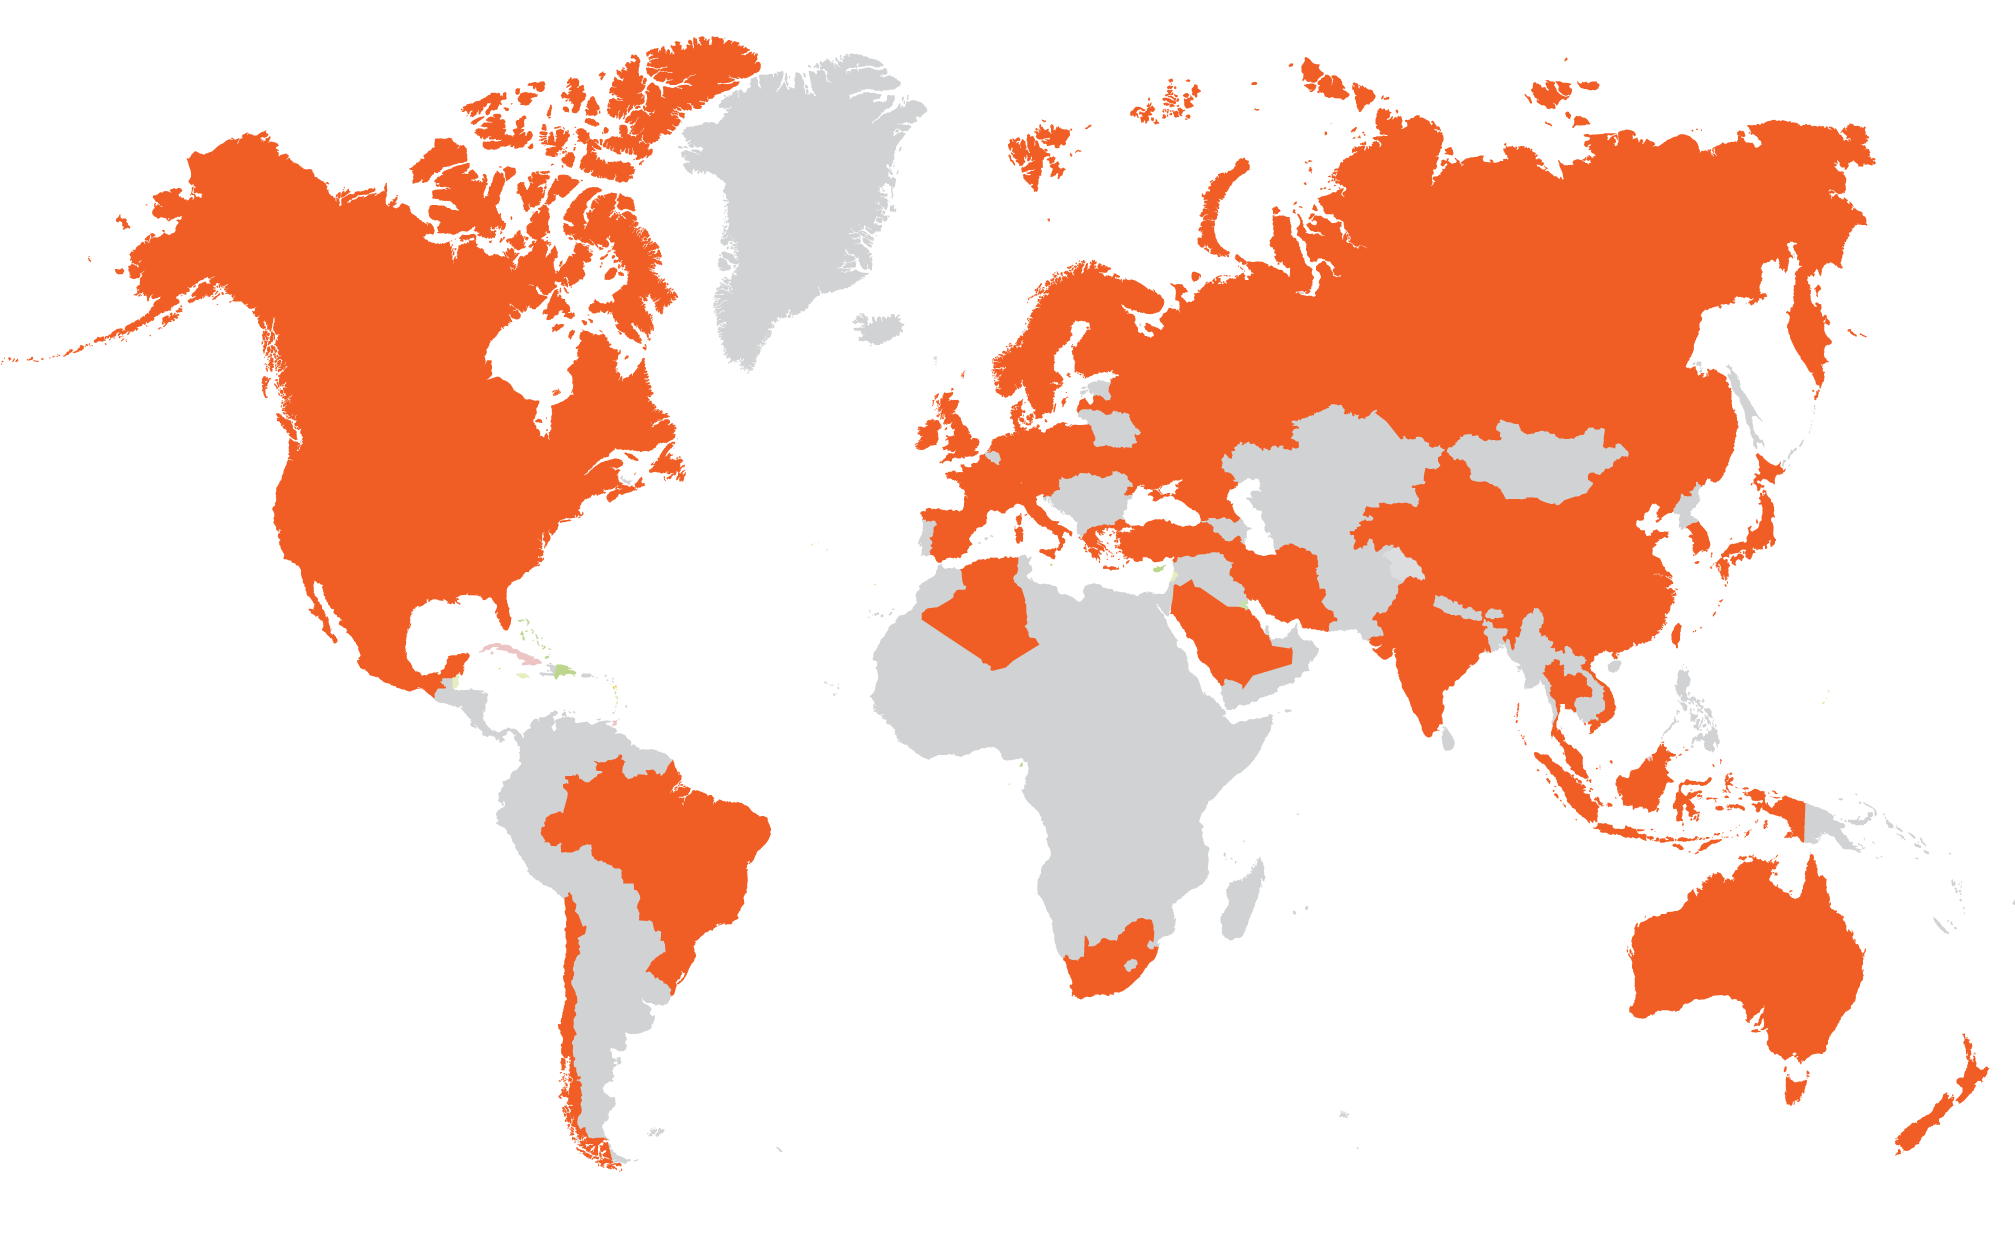 "<span style=""color: #f05e23;""><strong>FTT </strong></span></span></span><span class=""s1"">'s cone calorimeters feature in over 45 countries worldwide"